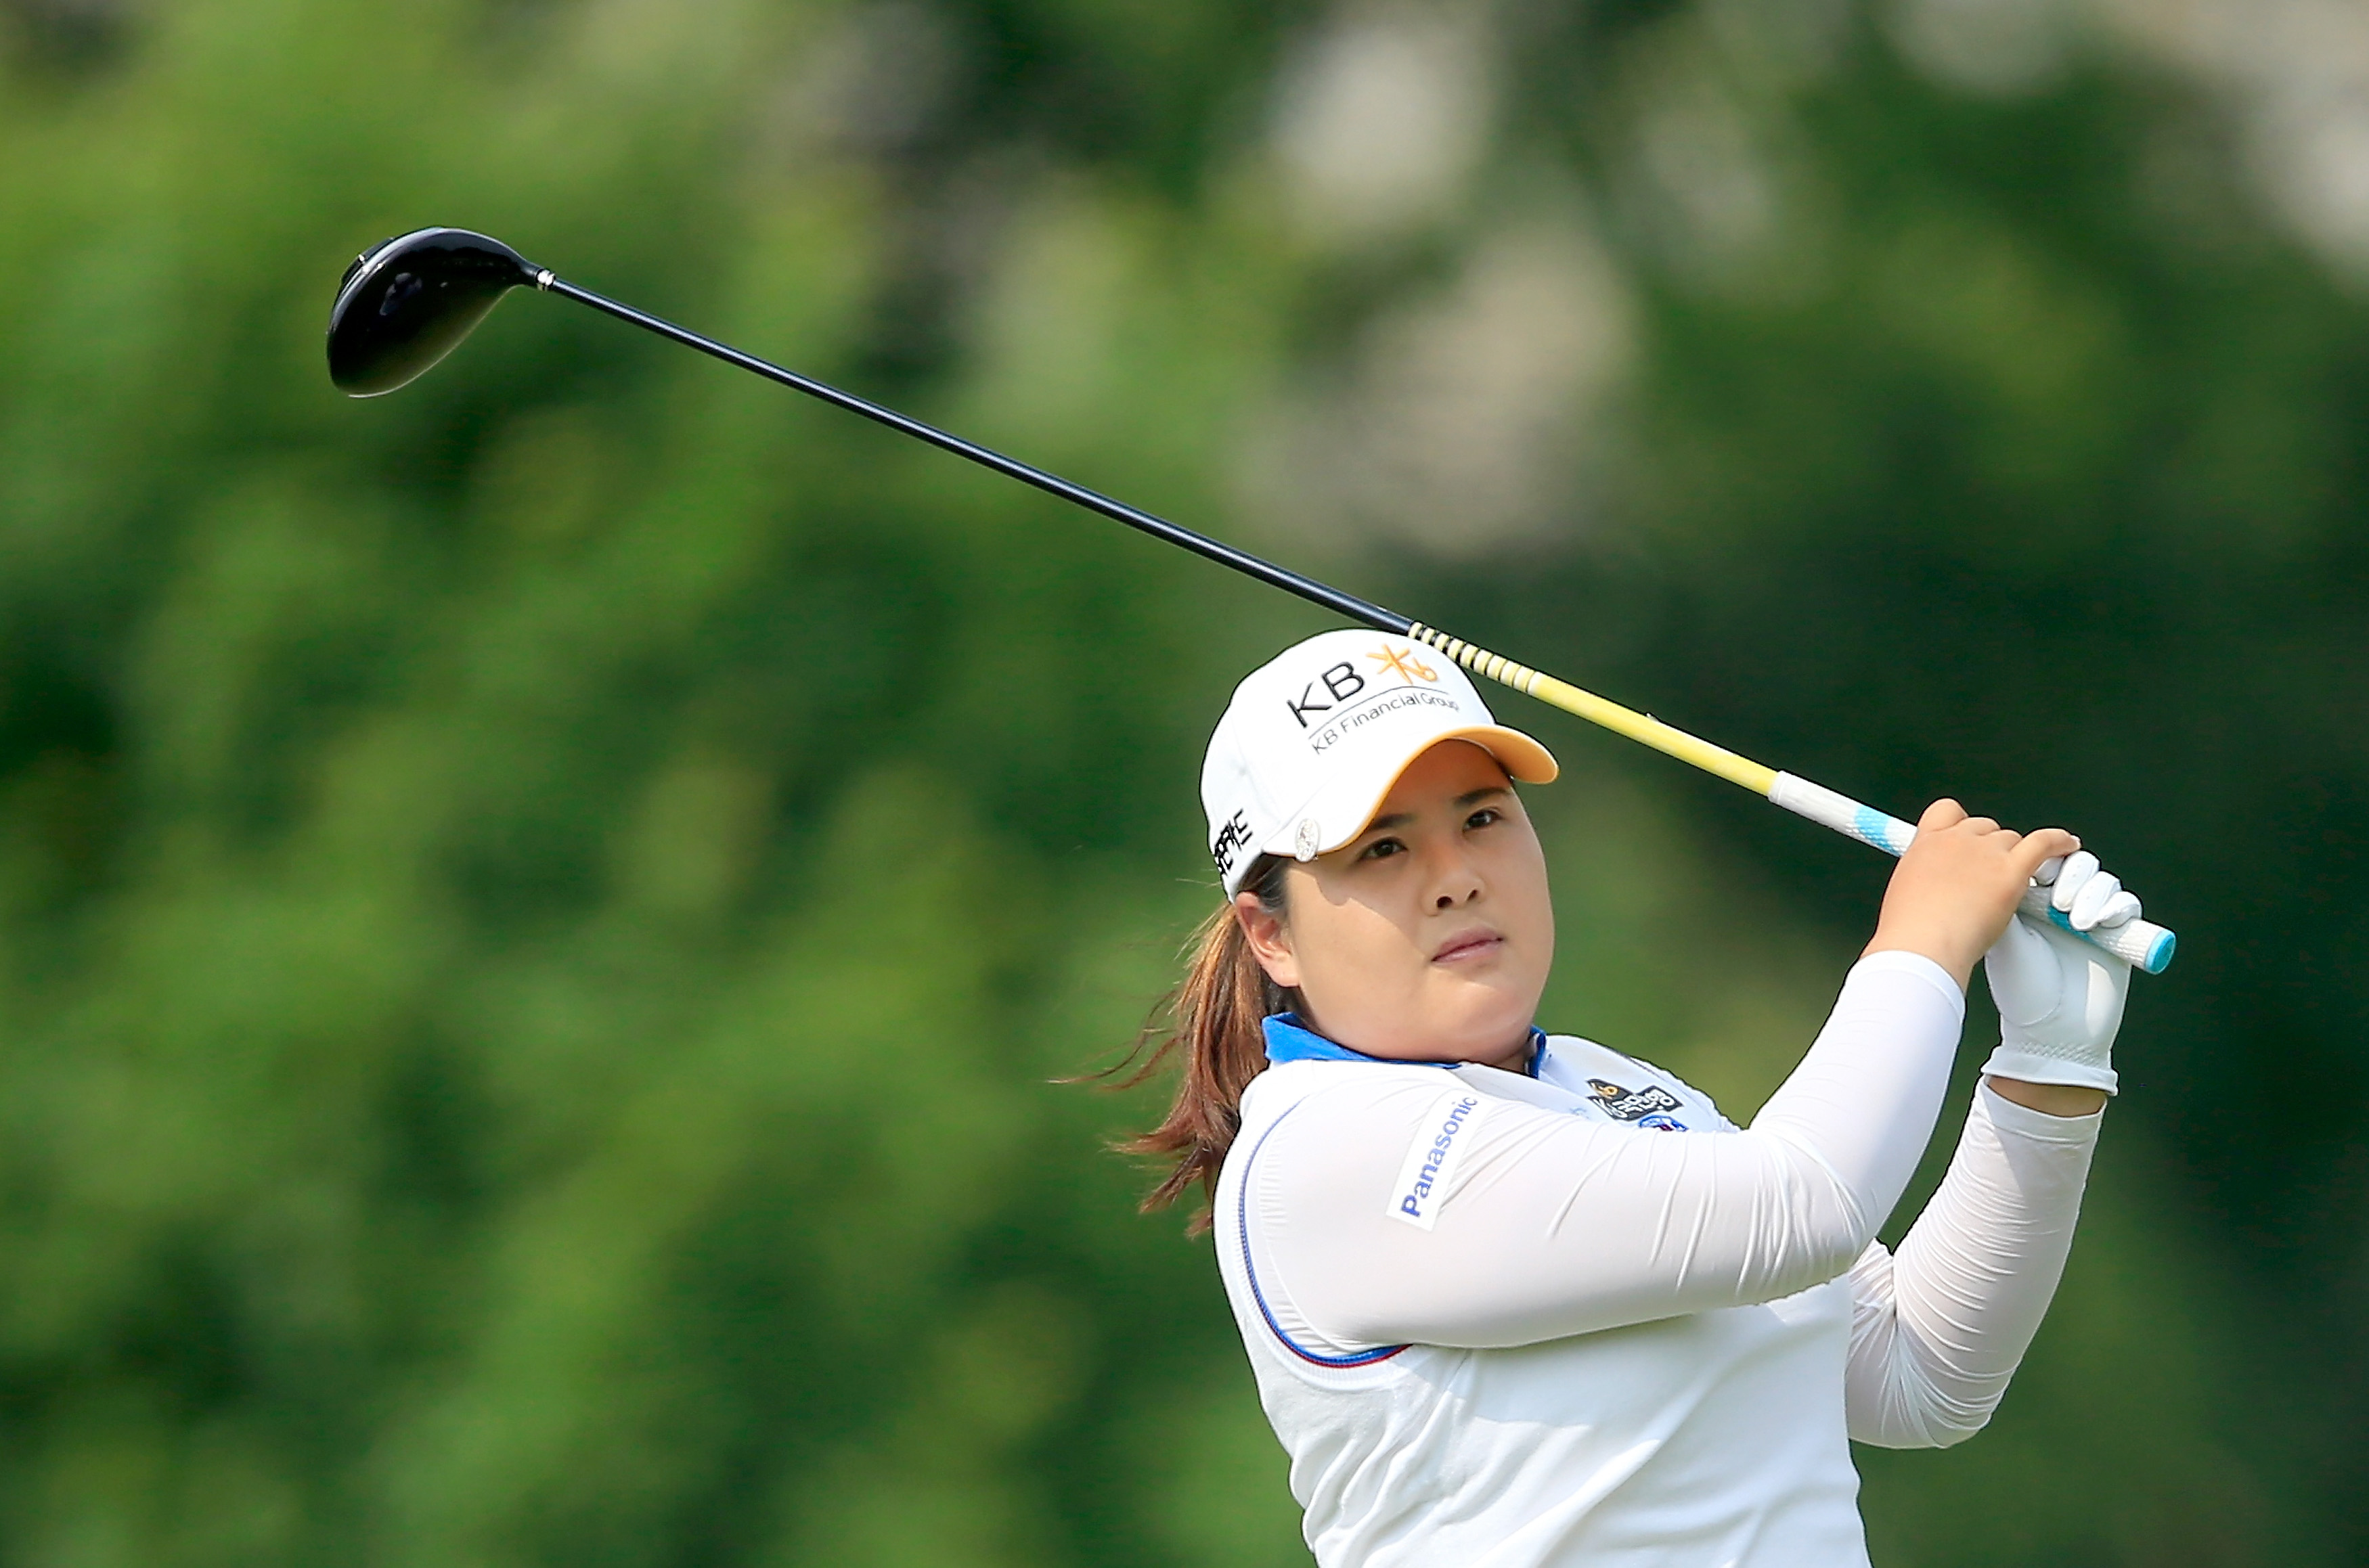 Inbee Park tees off on the 18th hole during the second round of the Women's PGA Championship.